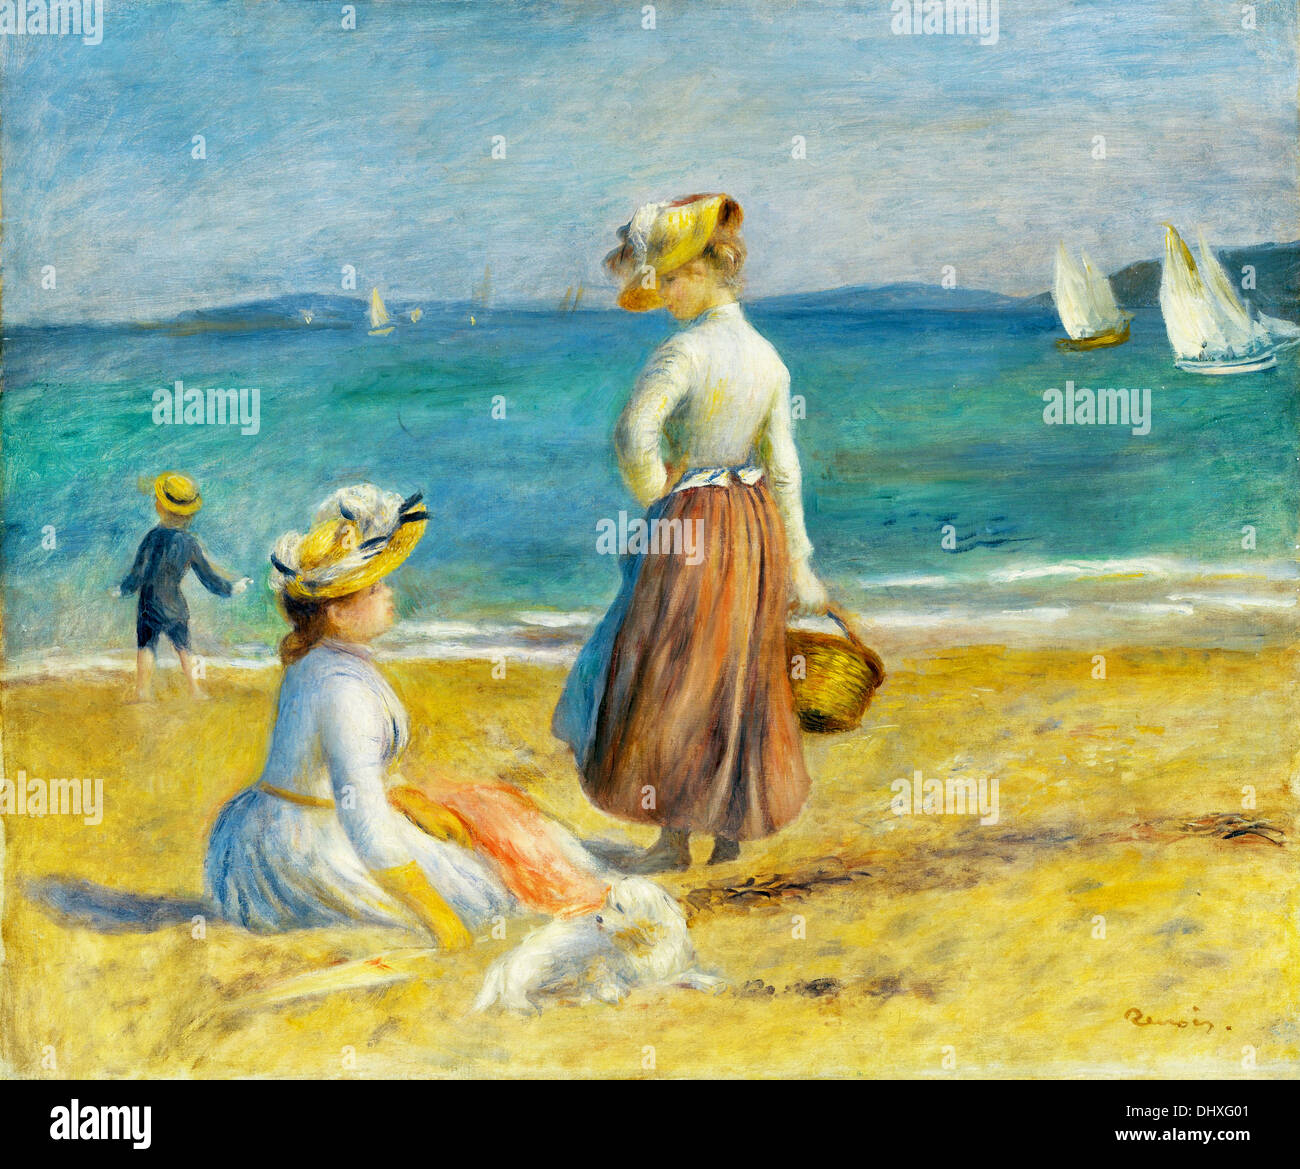 Figures on the Beach - by Auguste Renoir, 1890 - Stock Image